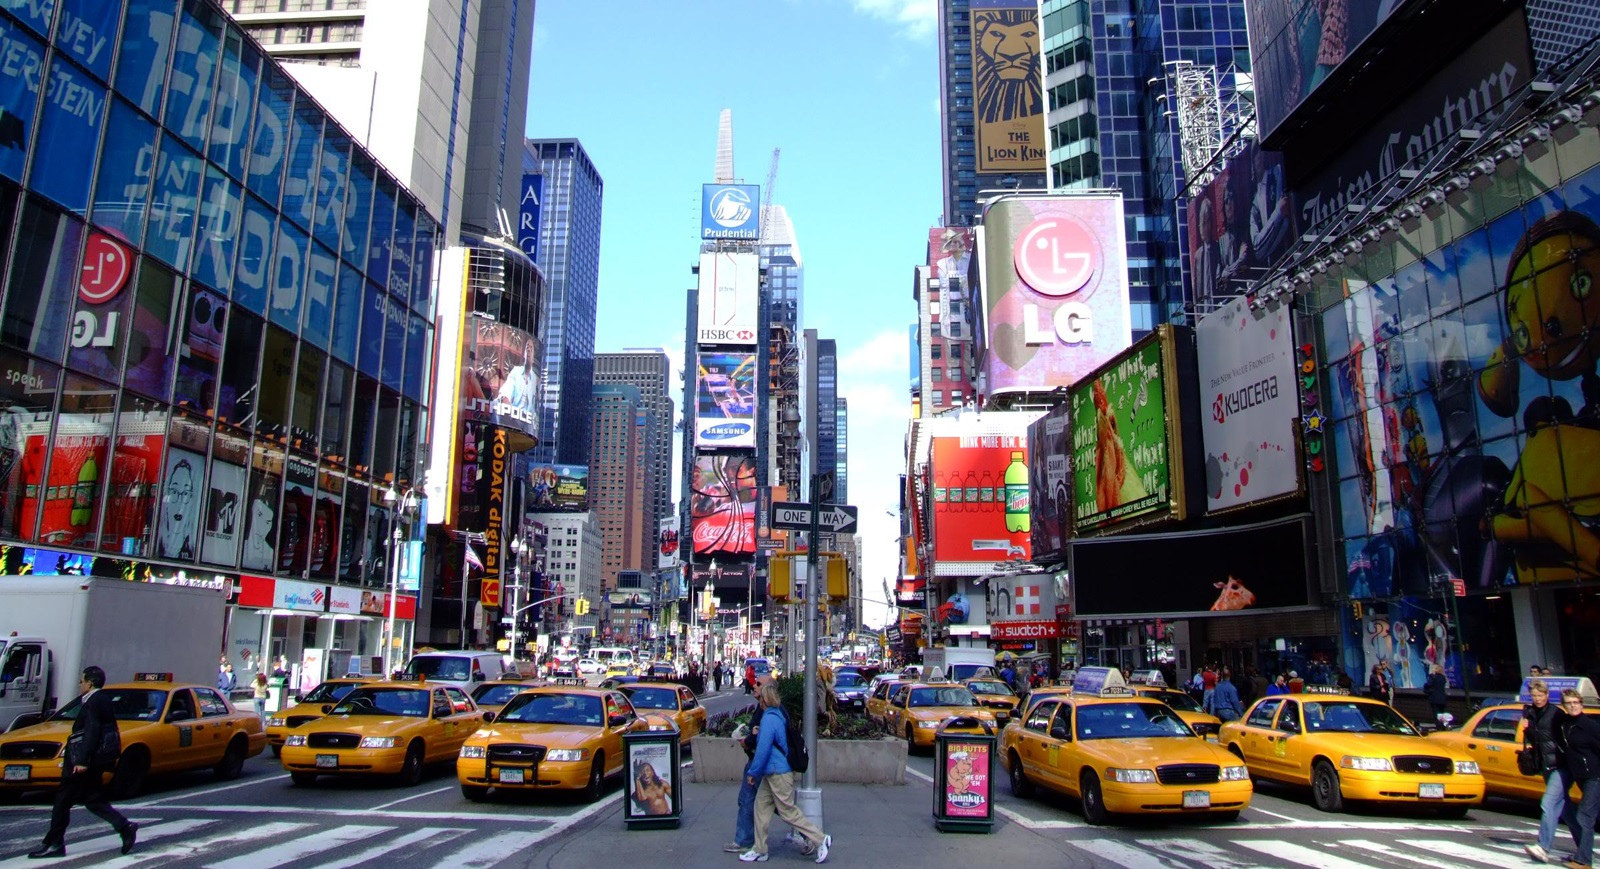 Apartments For Rent In New York City Times Square Times SquareApartments For Rent In New York City Times Square   Amazing  . New York City Apartments For Rent Near Times Square. Home Design Ideas